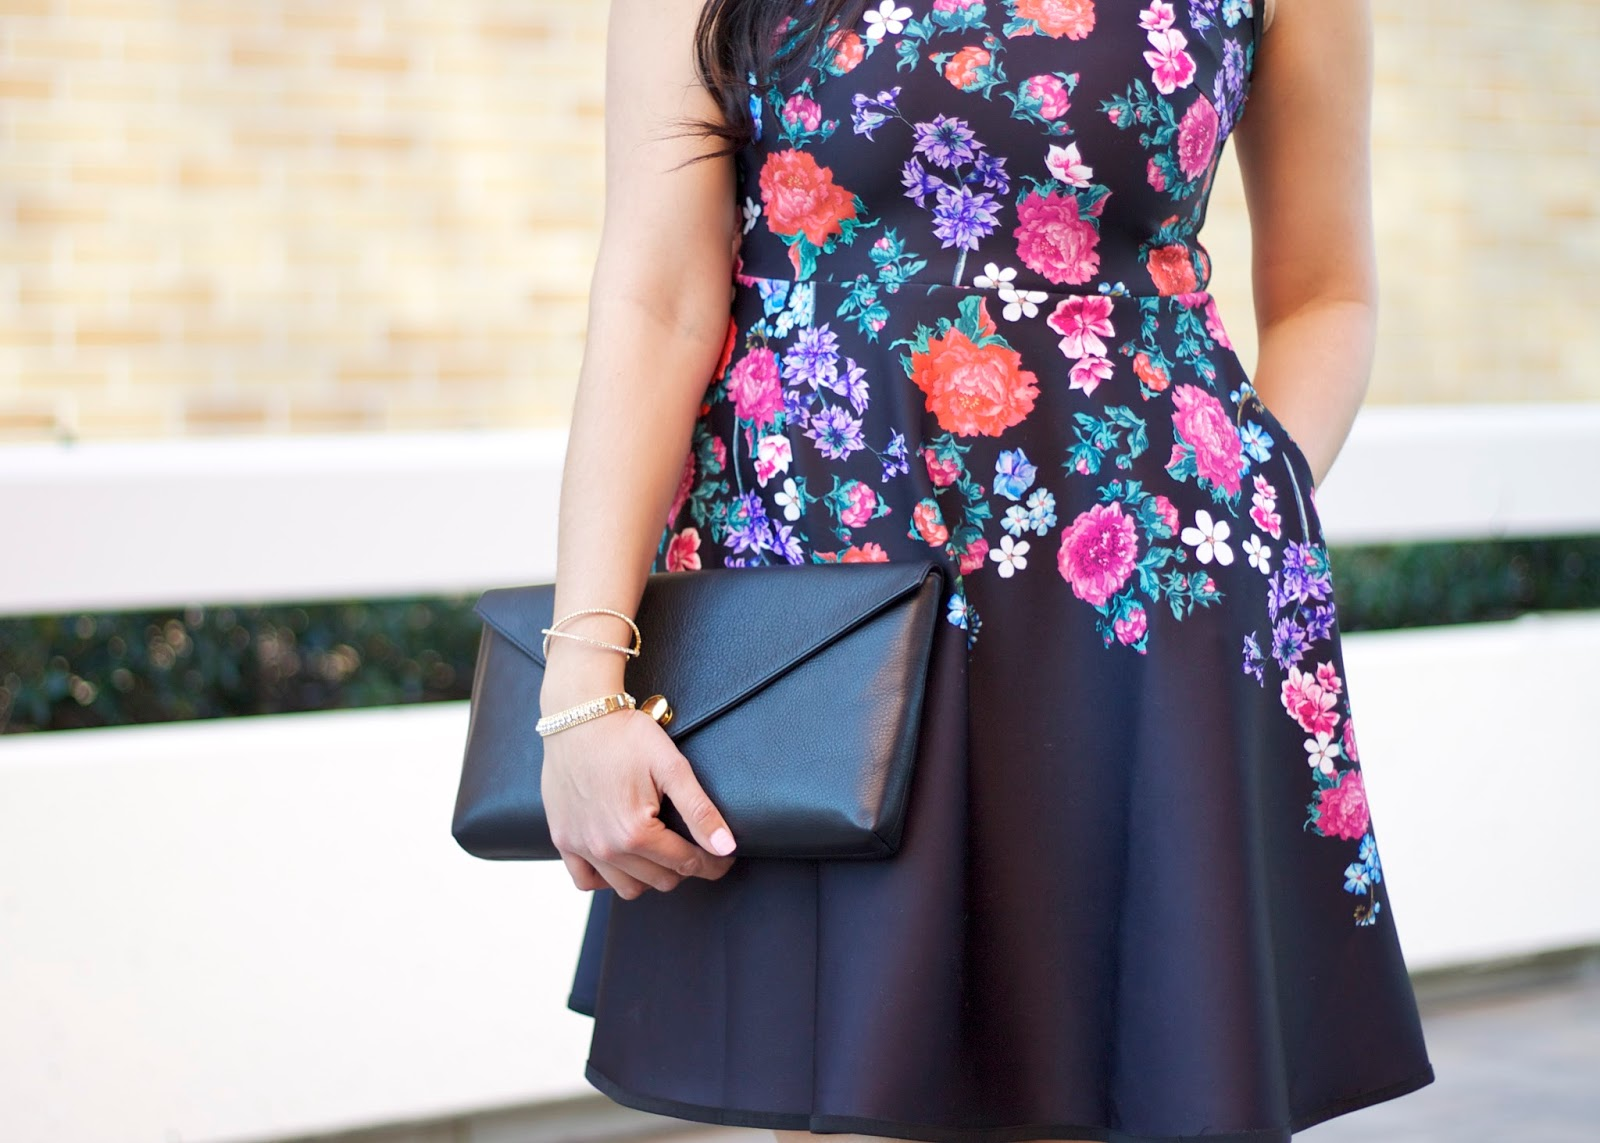 Floral skater dress, black linell ellis clutch, black structured clutch, what to wear this spring